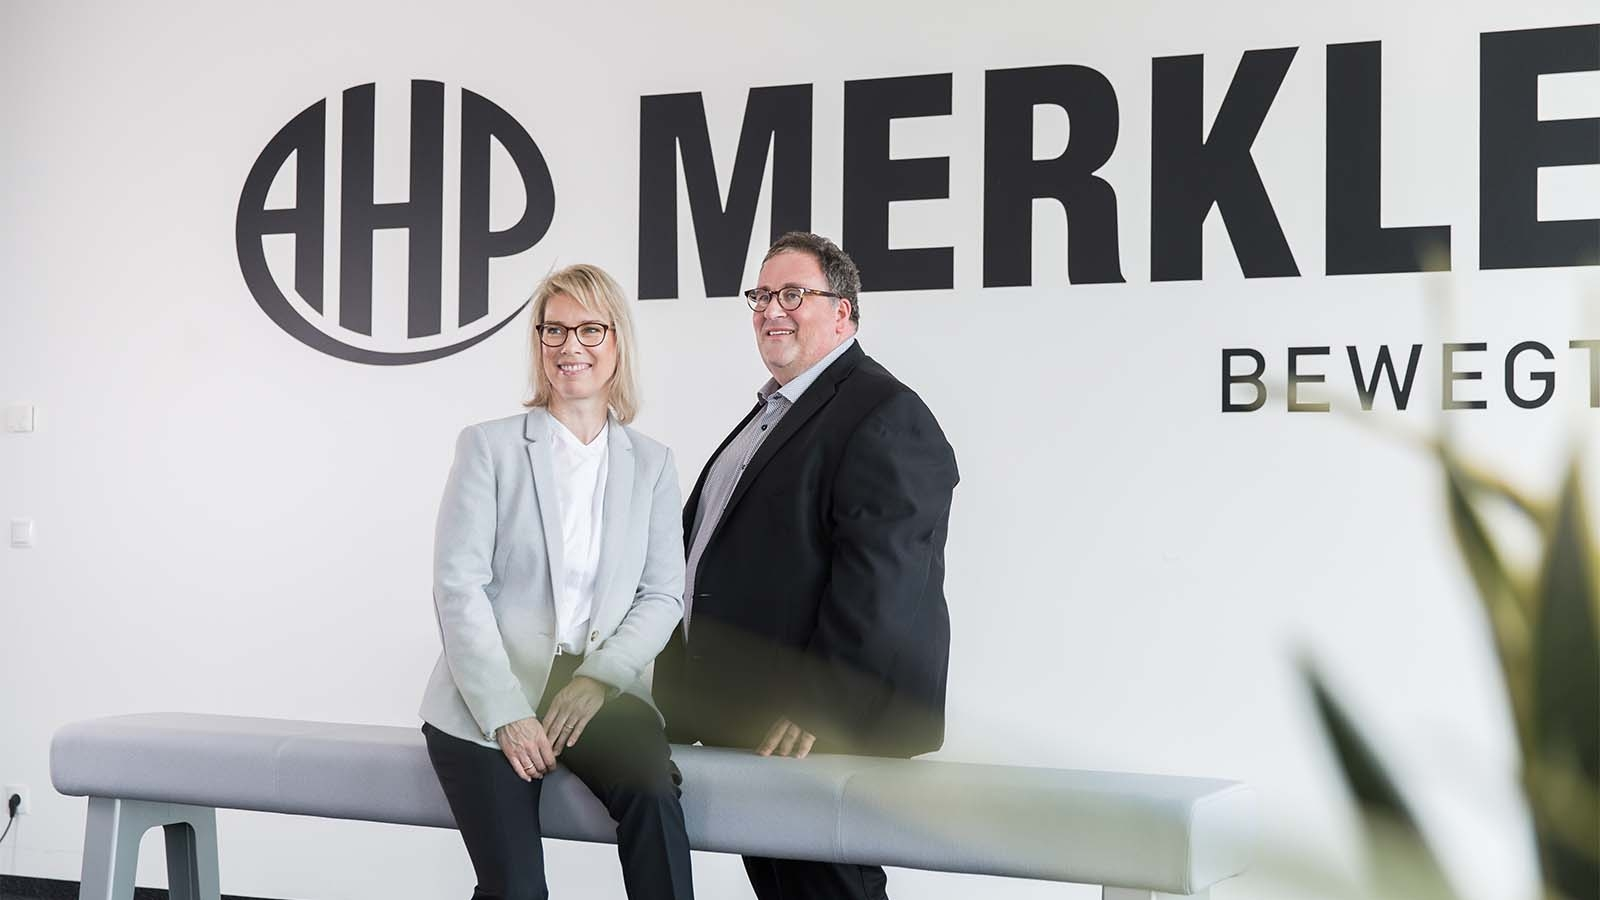 The two managing directors of the company, Katrin Merkle and Christen Merkle